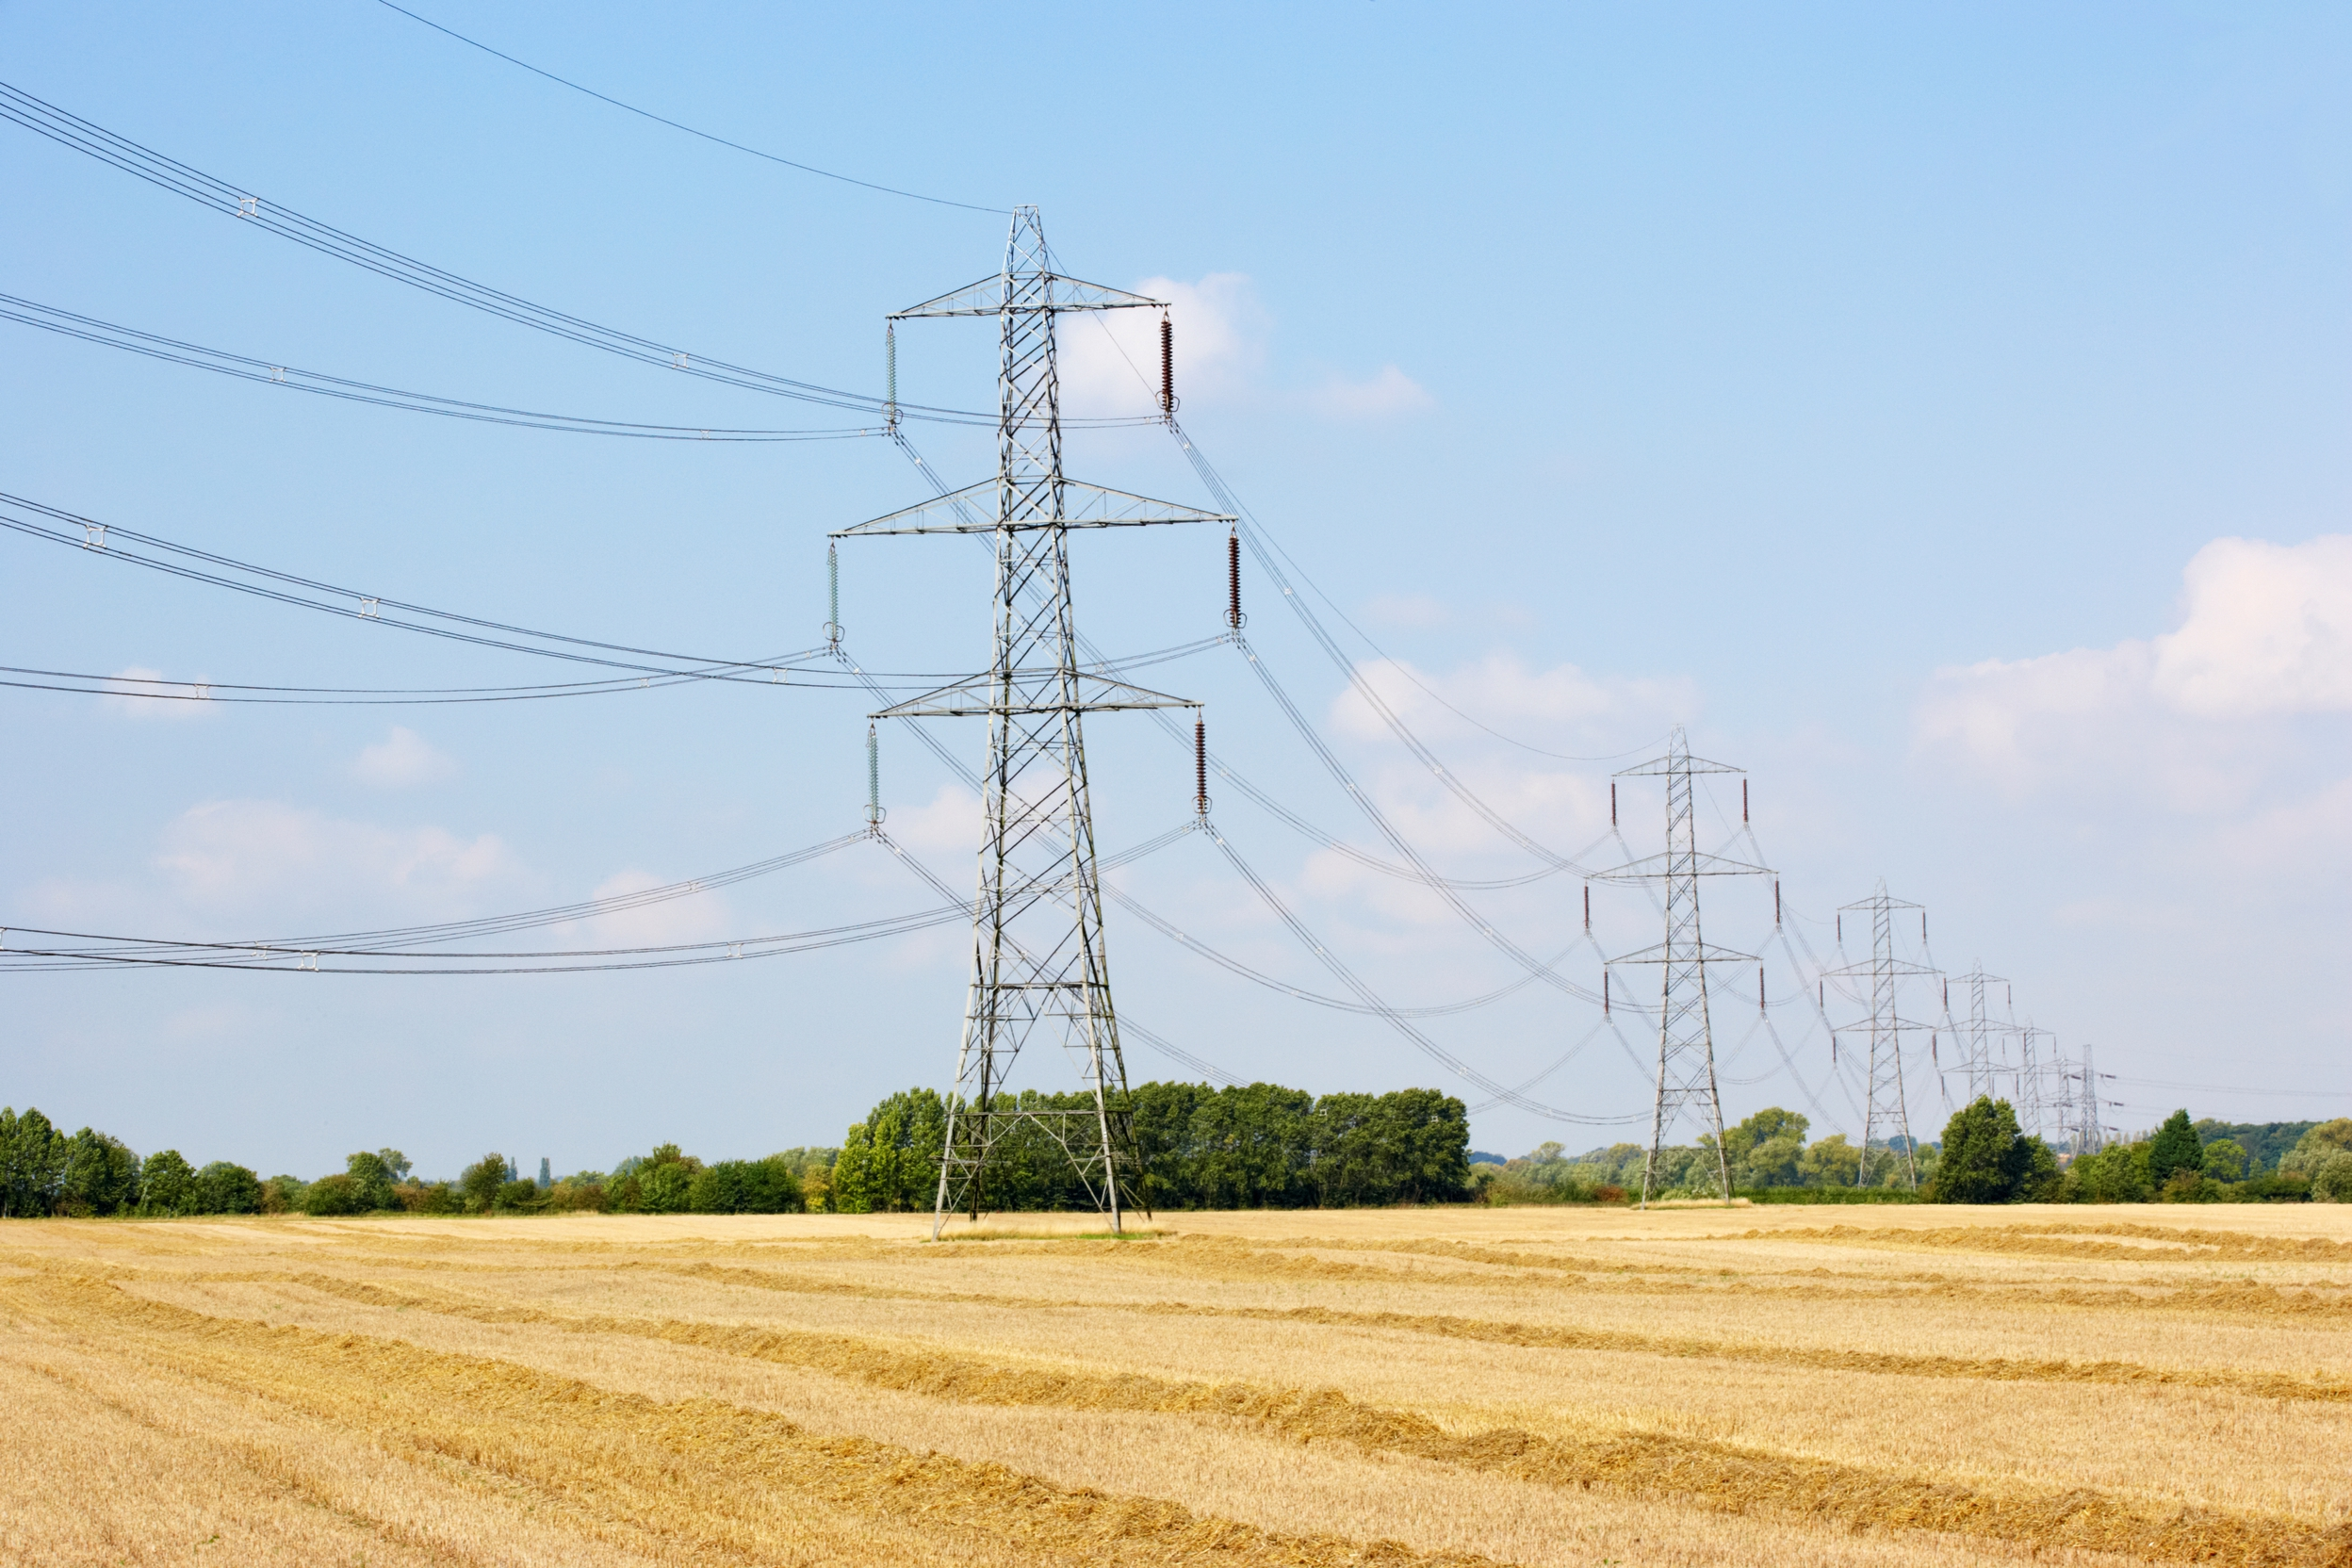 UK To Double French Energy Supplies With New Cable